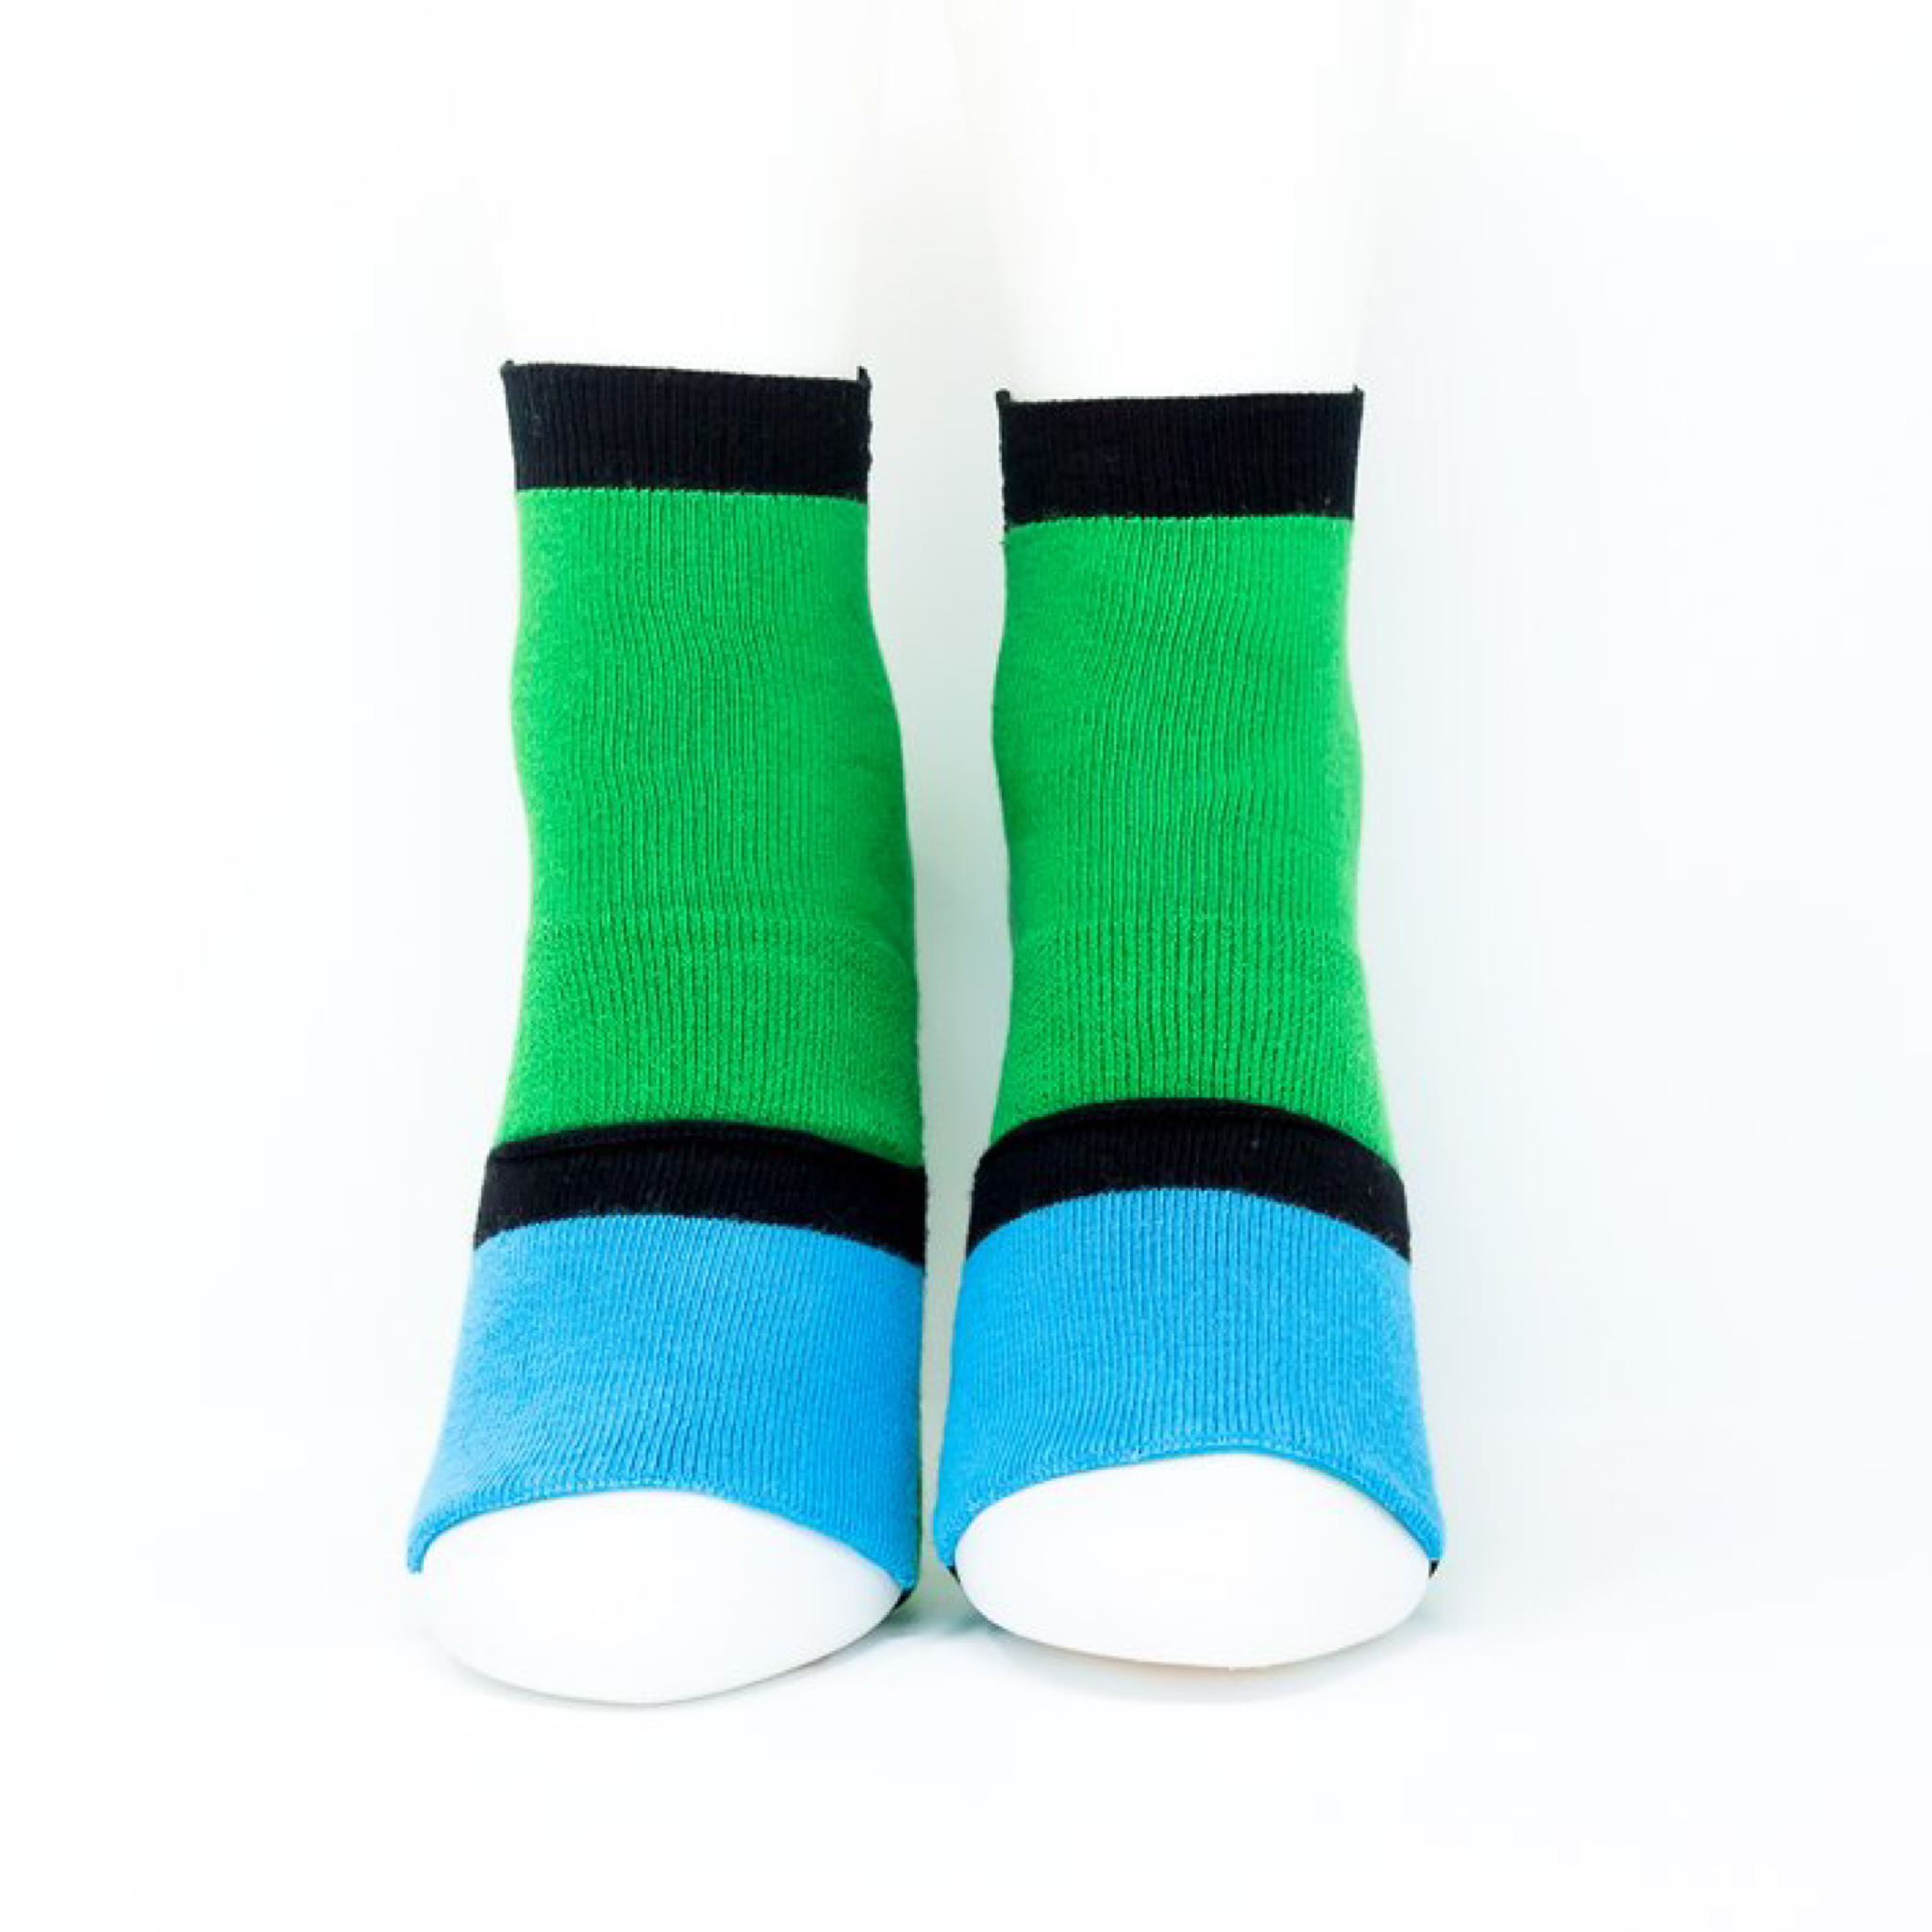 Adult Ankle Sock with Compression - Green/Sky Blue